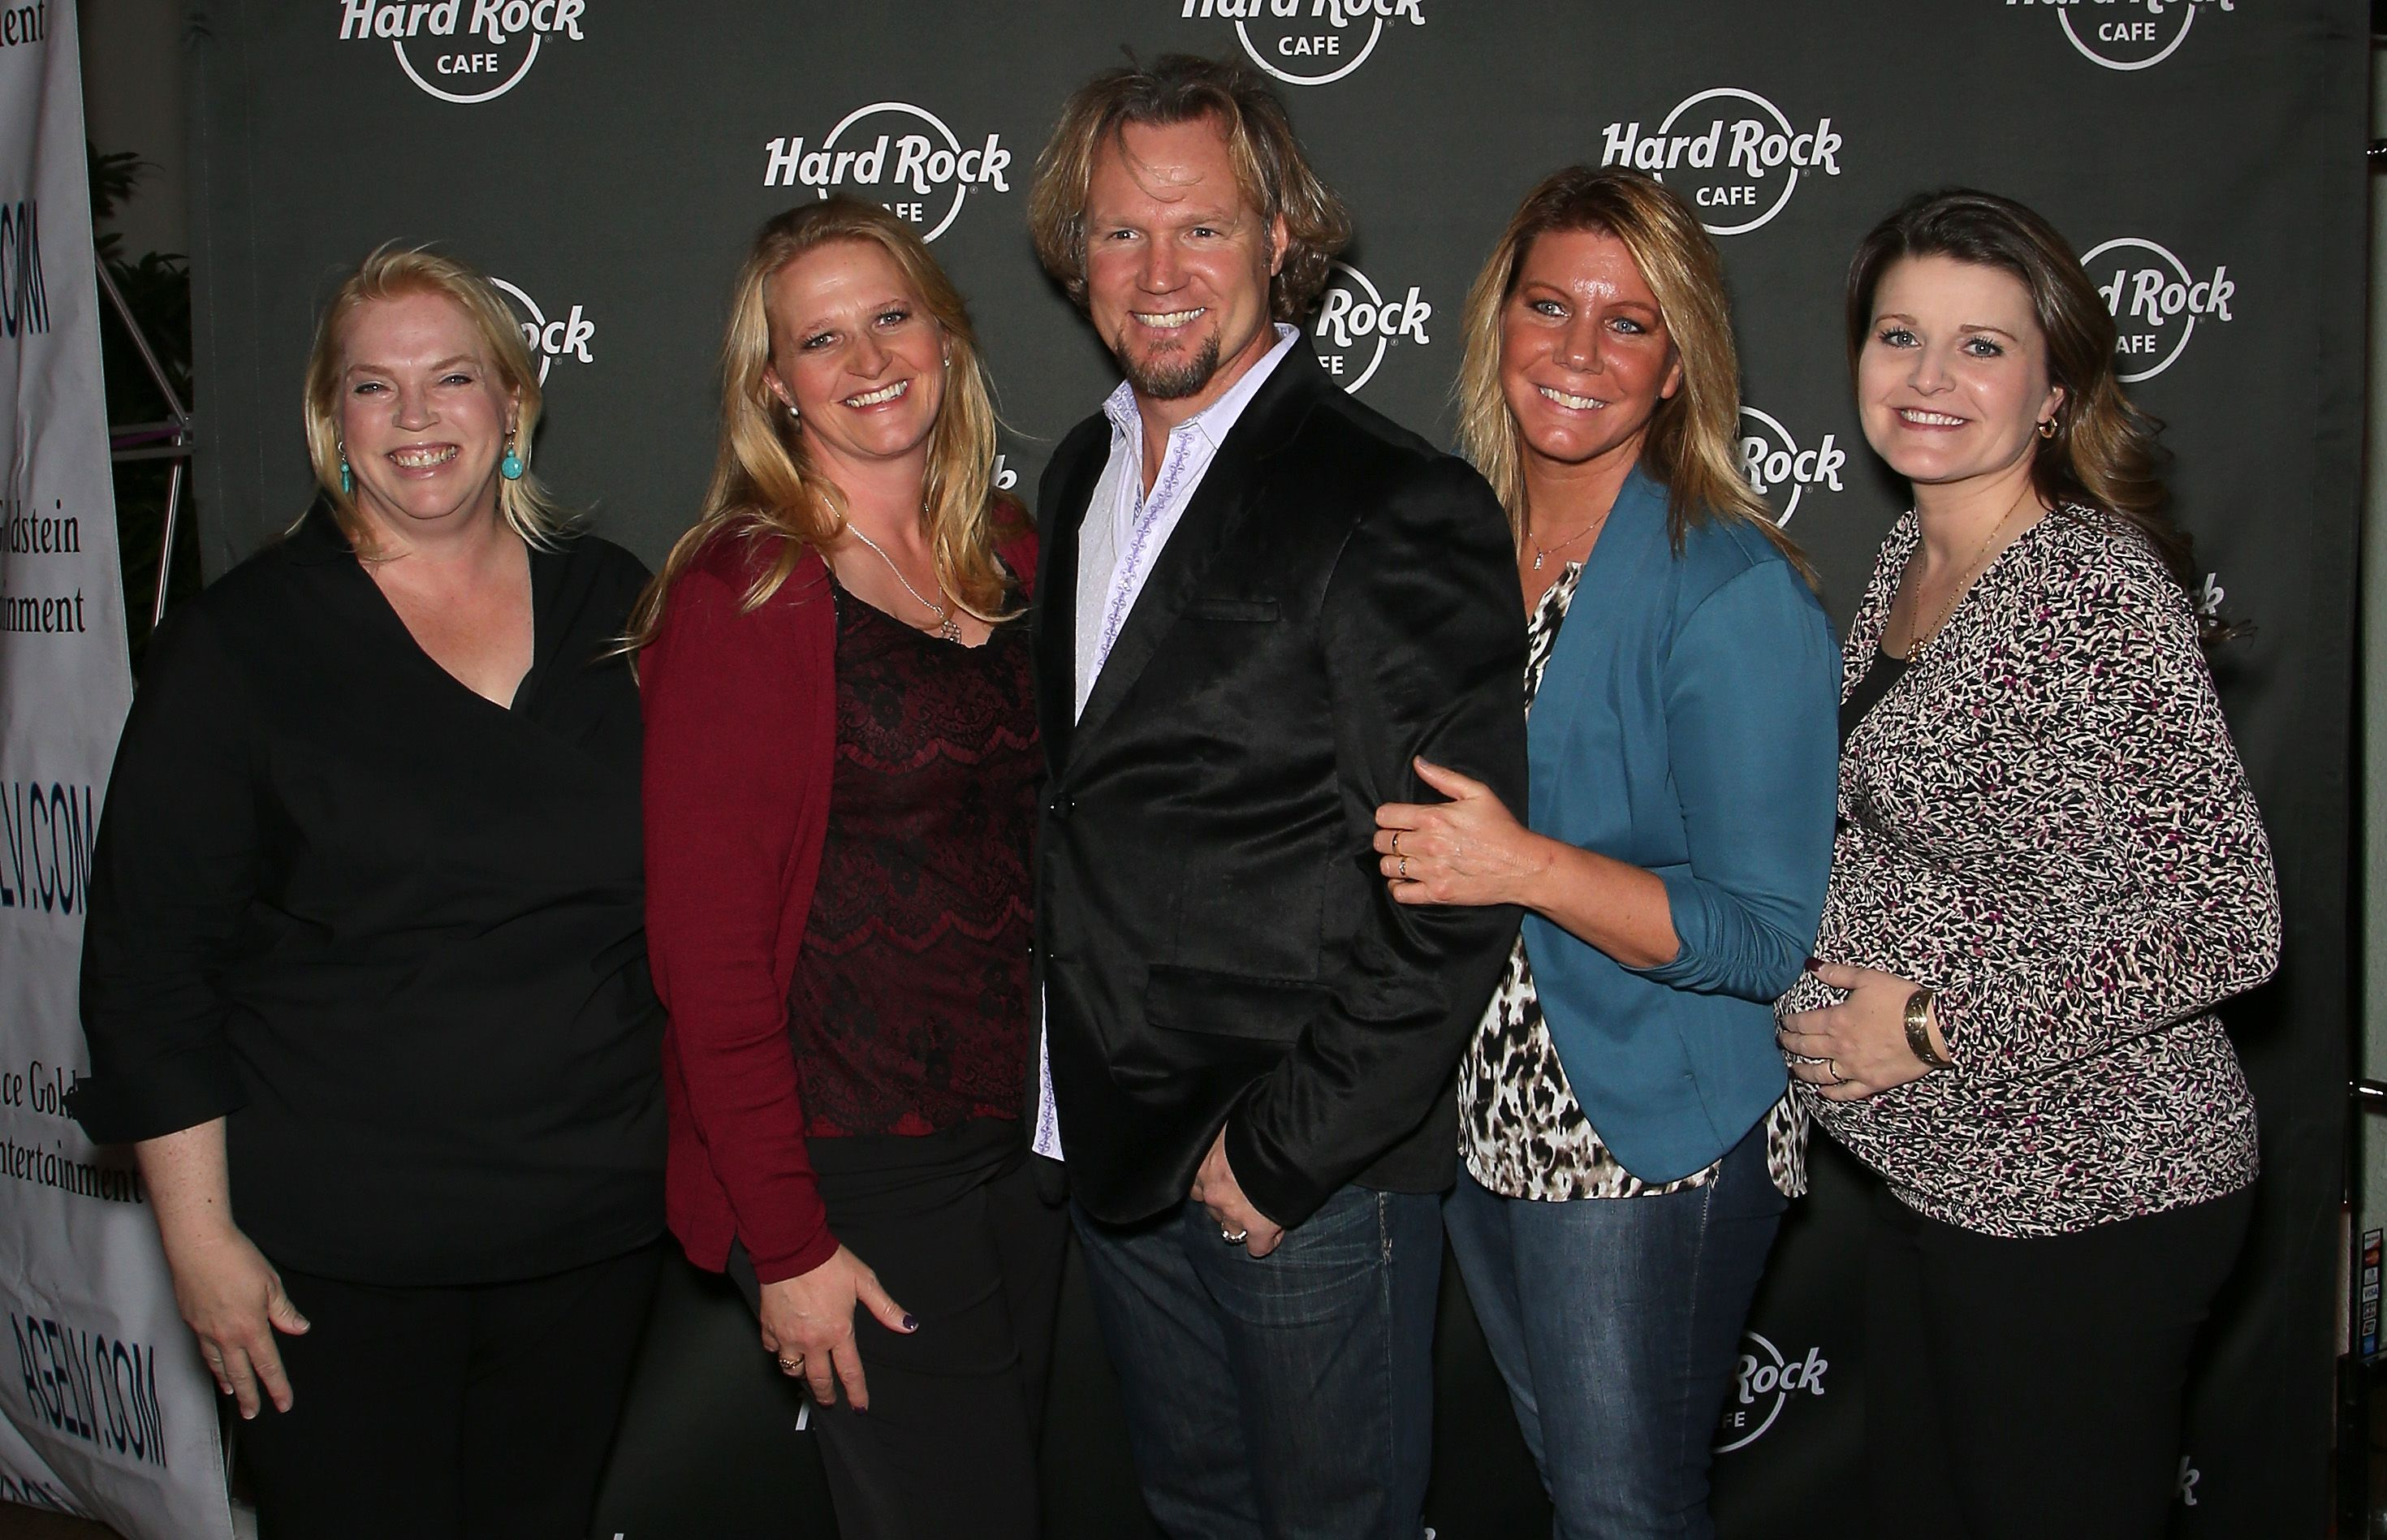 Kody Brown and his wives Janelle Brown, Christine Brown, Meri Brown and Robyn Brown, at Hard Rock Cafe Las Vegas on October 10, 2015 | Photo: Getty Images